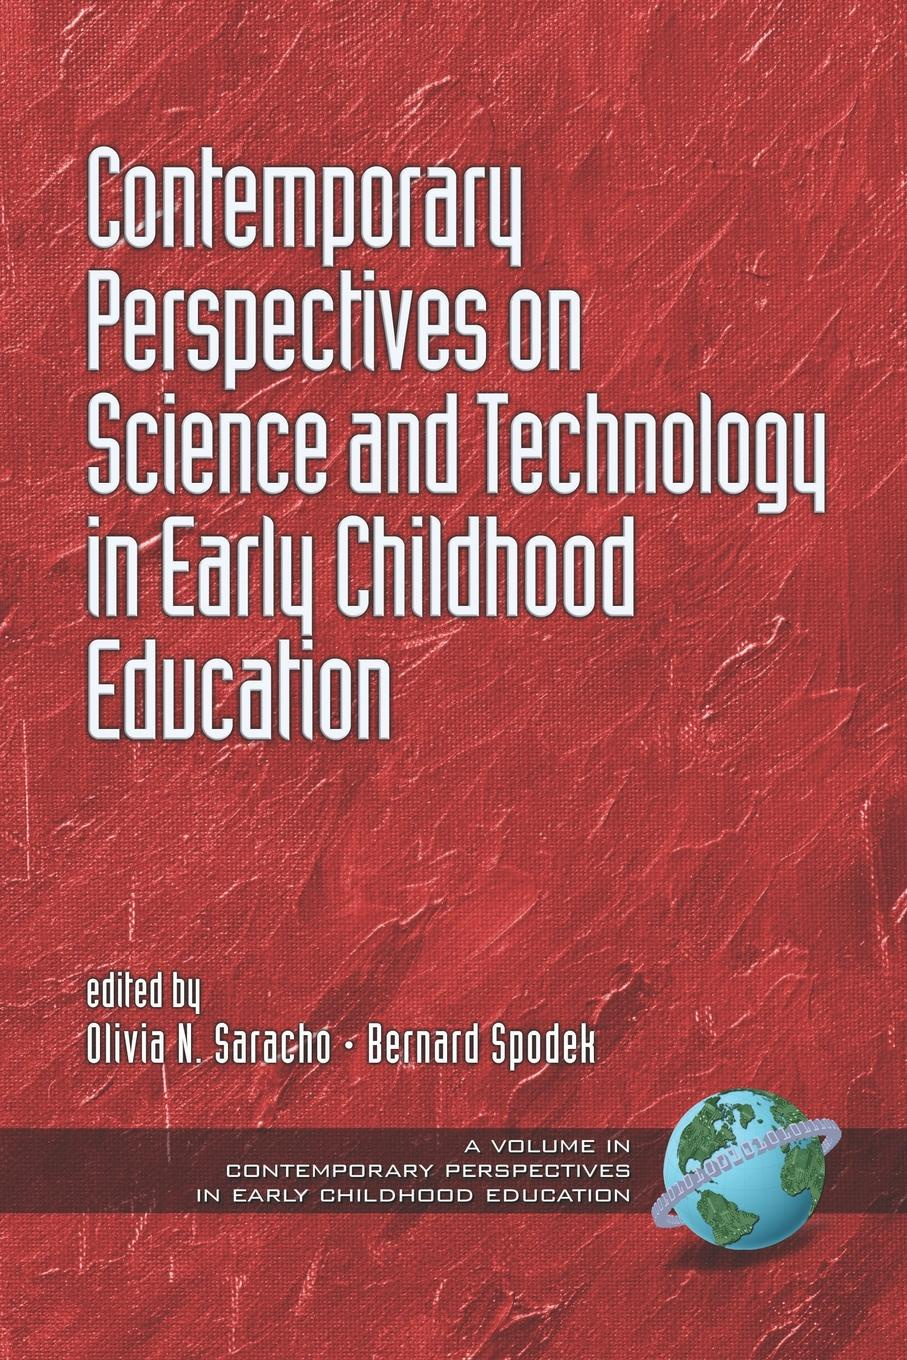 Contemporary Perspectives on Science and Technology in Early Childhood Education (PB) contemporary perspectives on science and technology in early childhood education pb